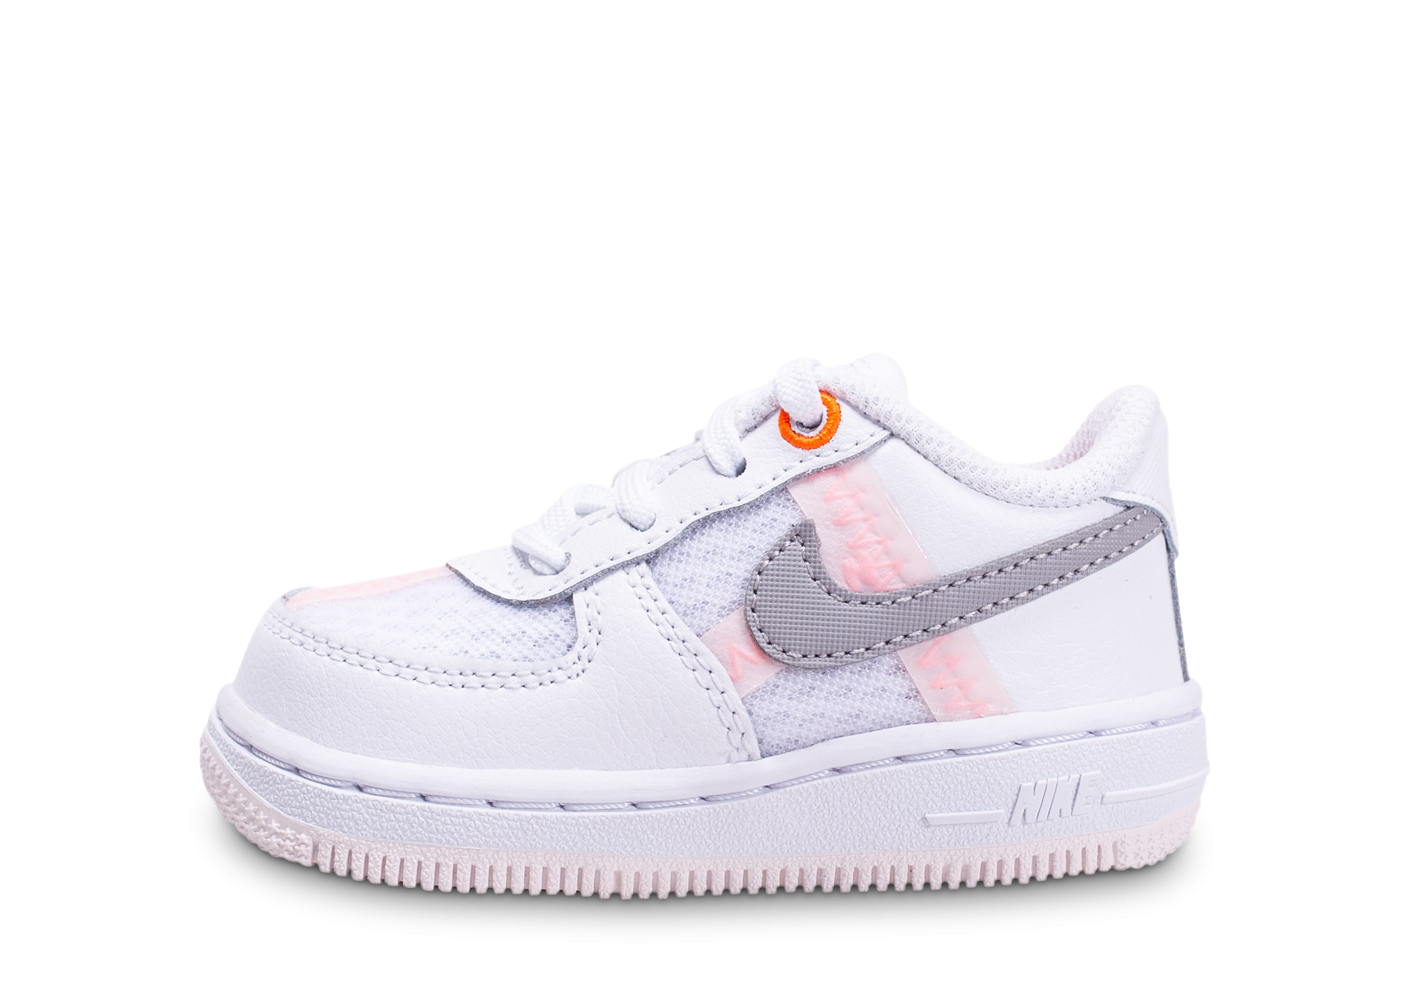 Nike Air Force 1 Low blanc gris rose bébé